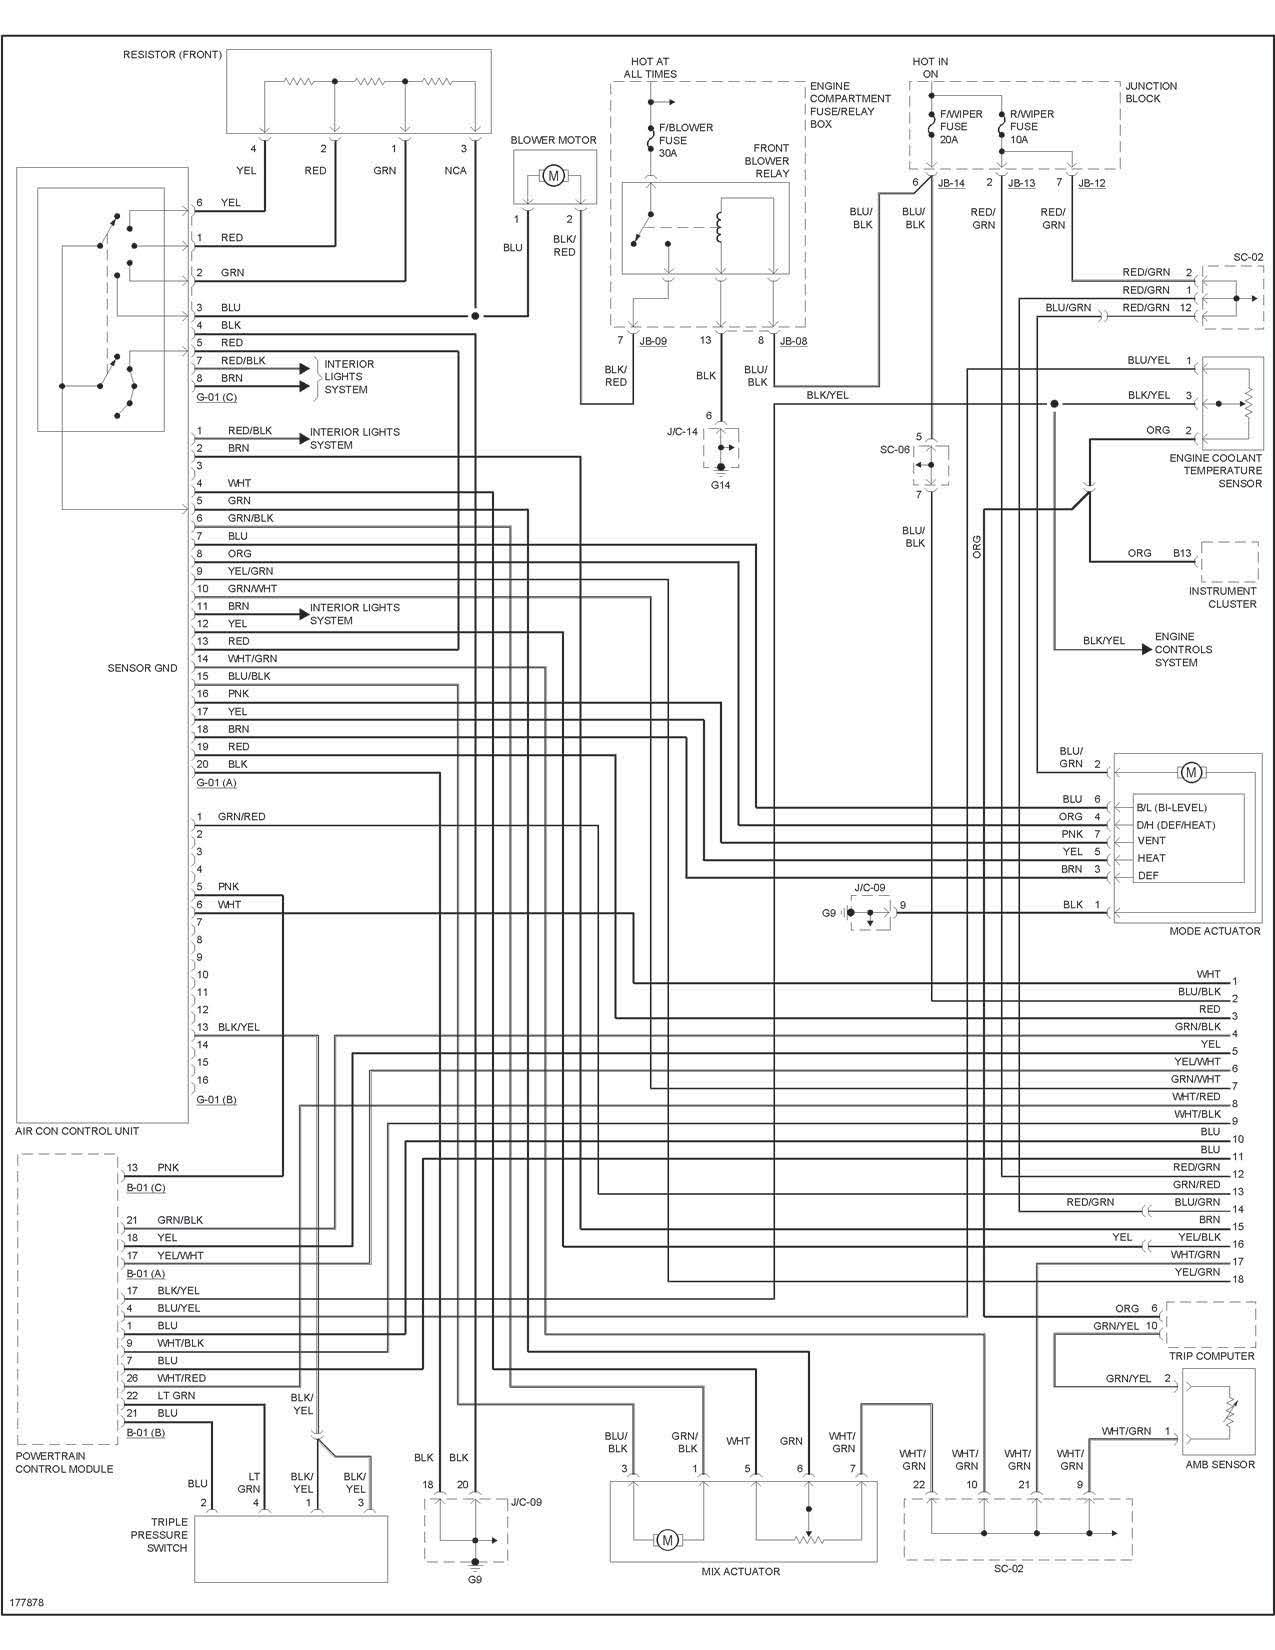 [SCHEMATICS_4FD]  Wiring Diagram Kia Carnival 2005 - rain.lair.seblock.de | 2006 Kia Rio Radio Wiring Diagram |  | Wiring Schematic Diagram and Worksheet Resources